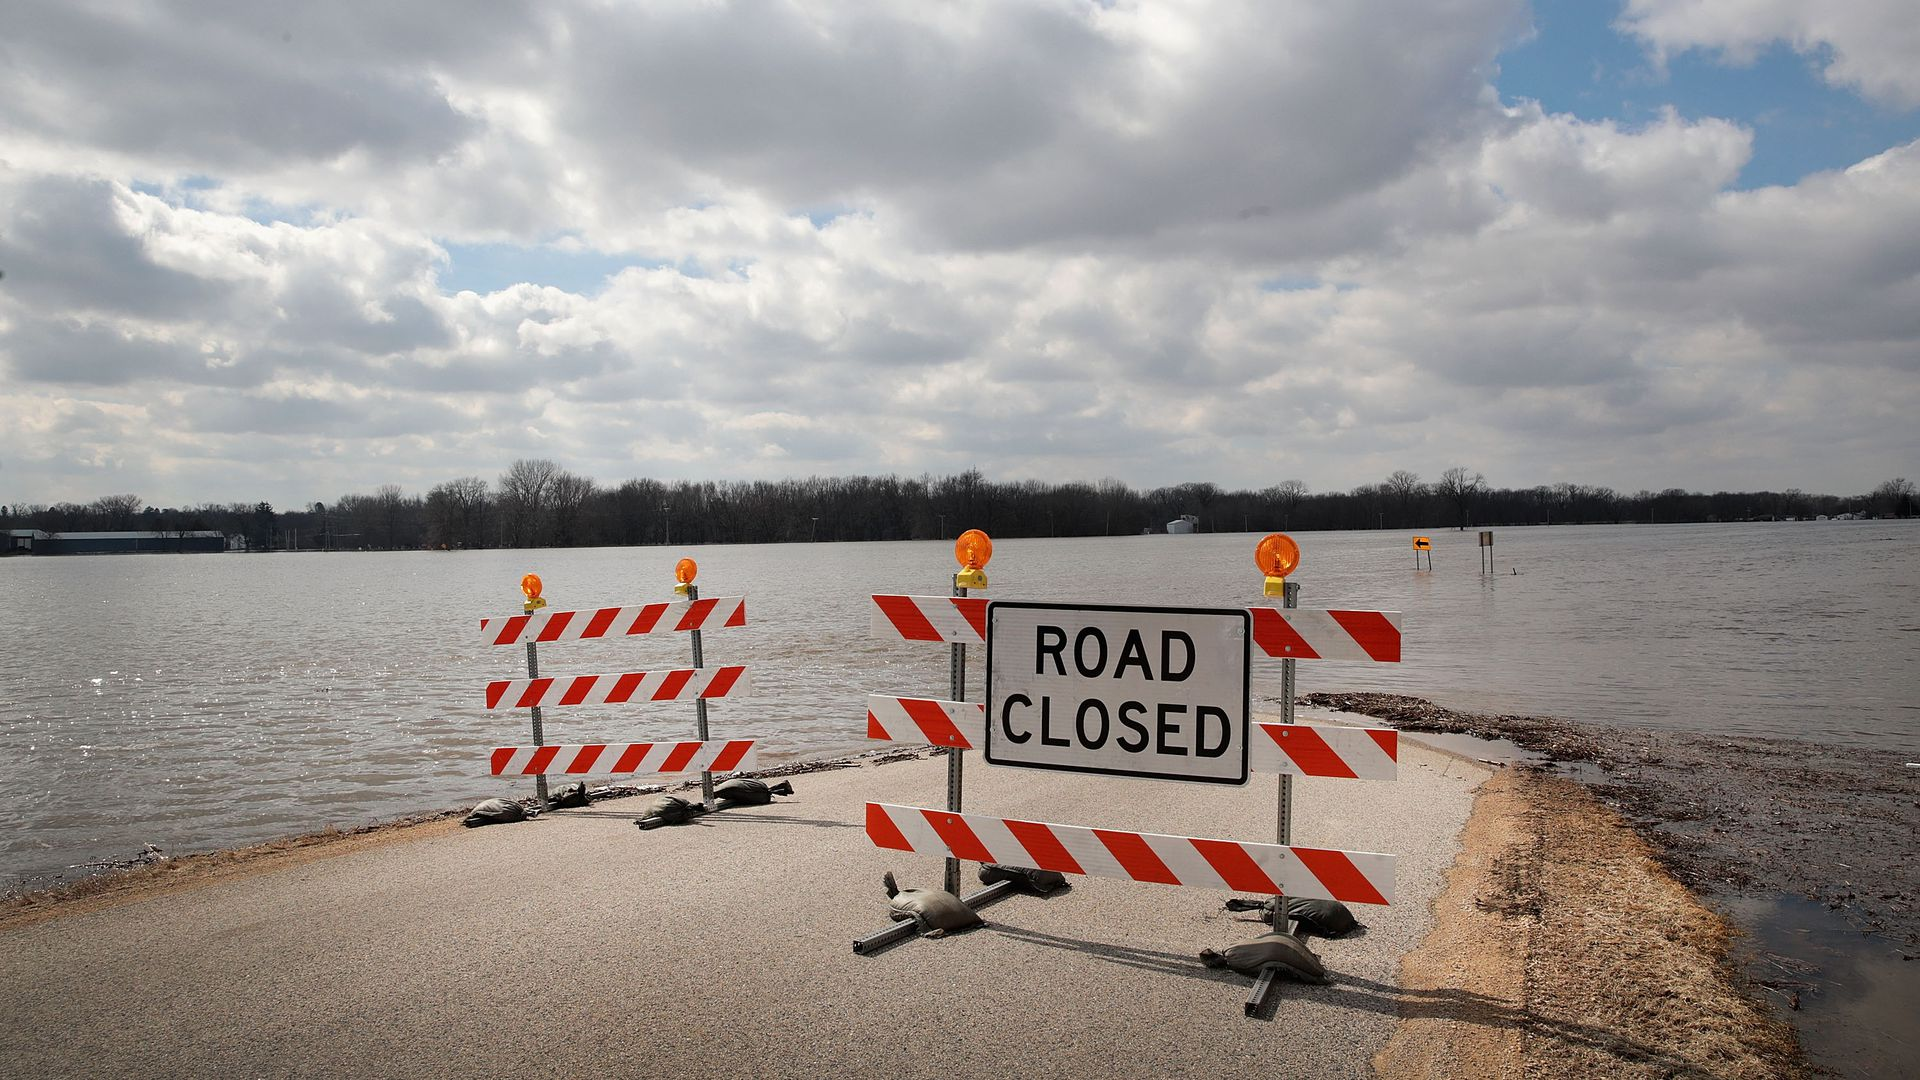 A road closed sign in front of a flooded road in the Midwest.